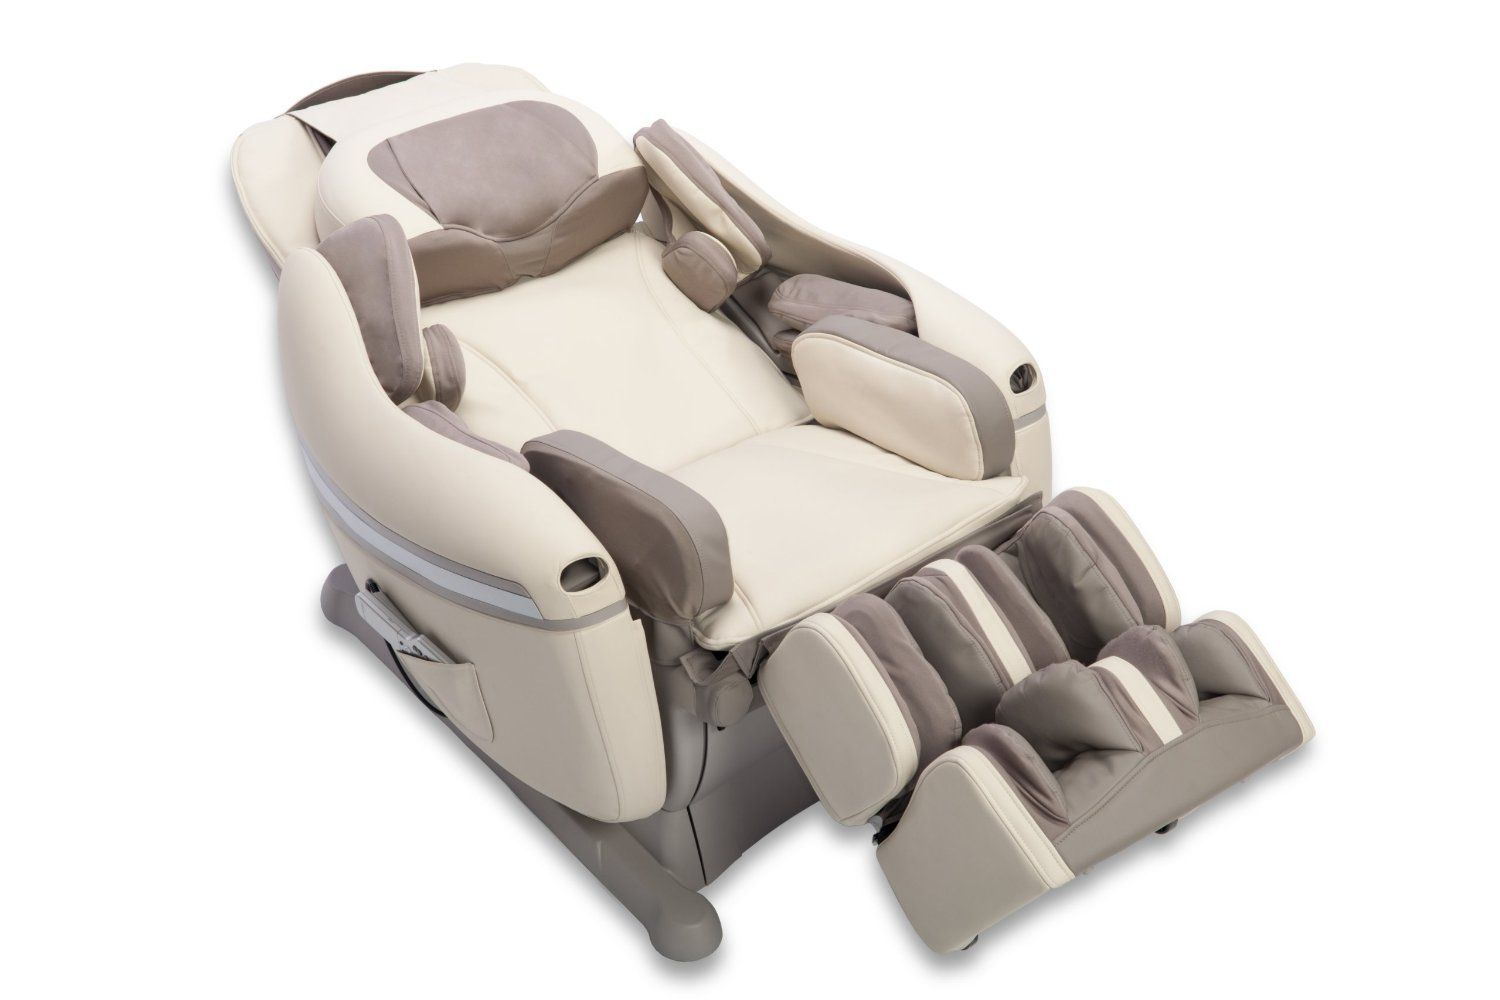 Inada Sogno Dreamwave Massage Chair Inada Massage Chairs Hcp 10001 Sogno Dreamwave Massage Chair